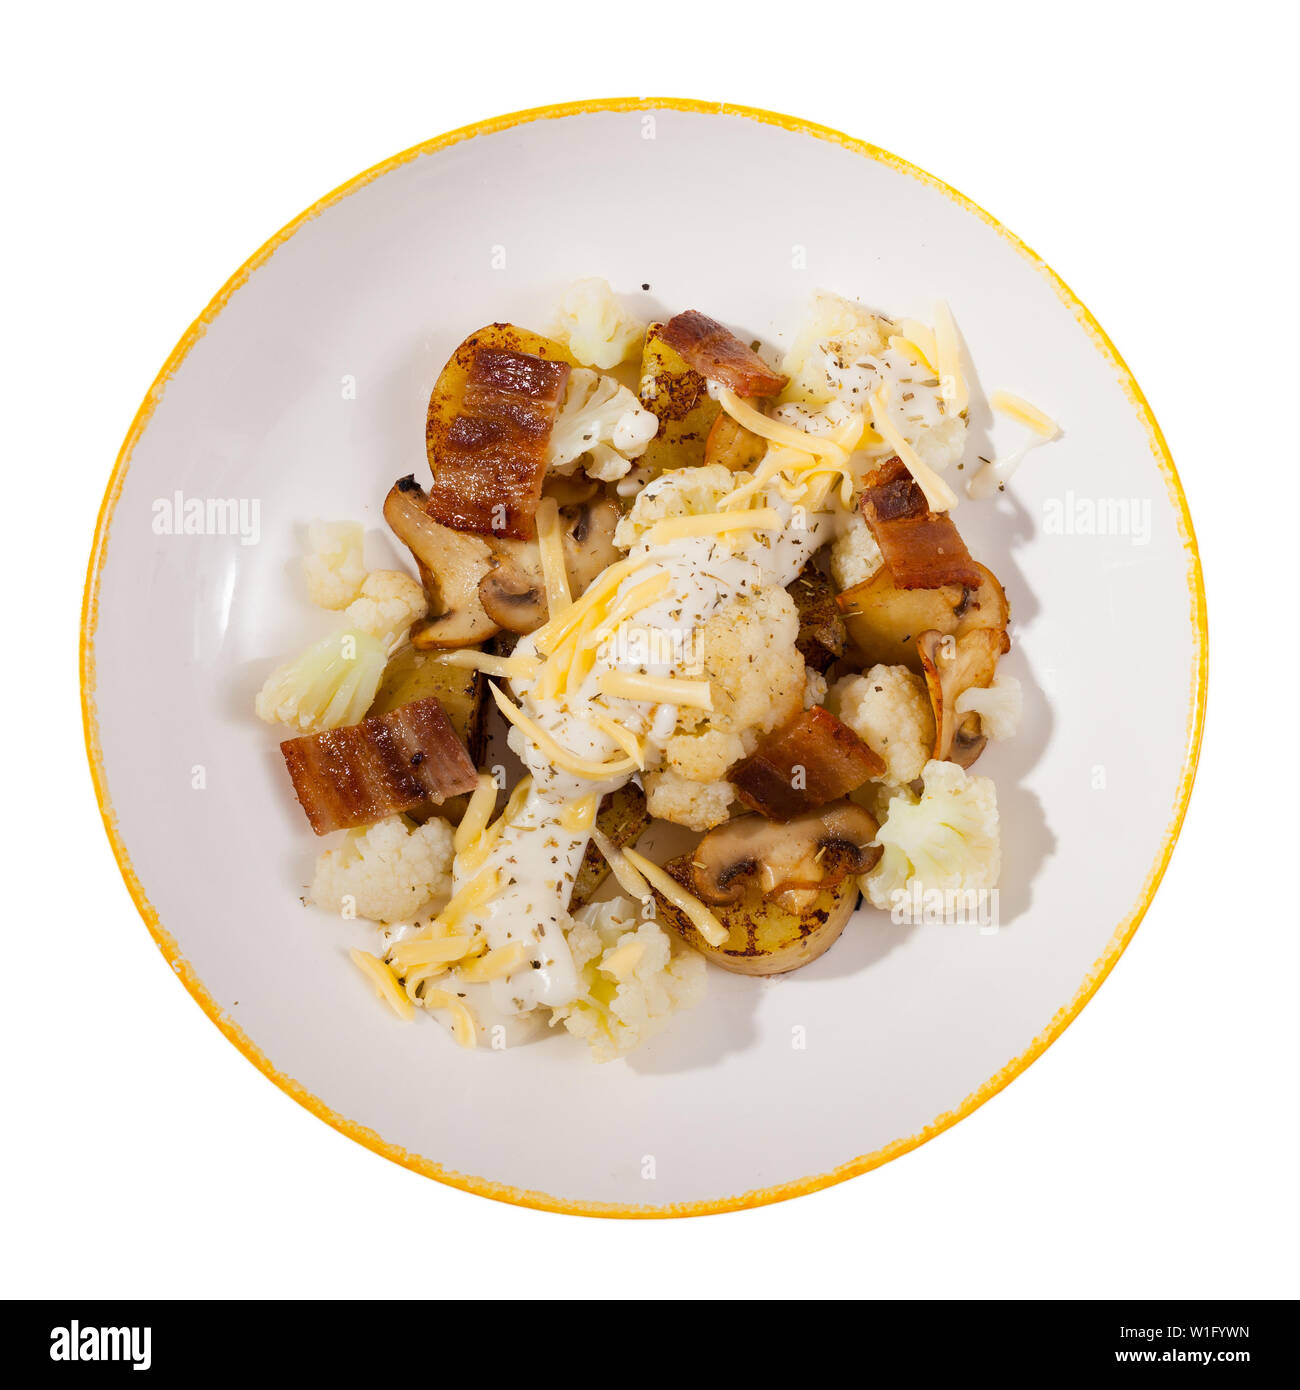 Top view of baked potatoes served with cauliflower, bacon and mushrooms with sauce and grated cheese on white plate. Isolated over white background - Stock Image